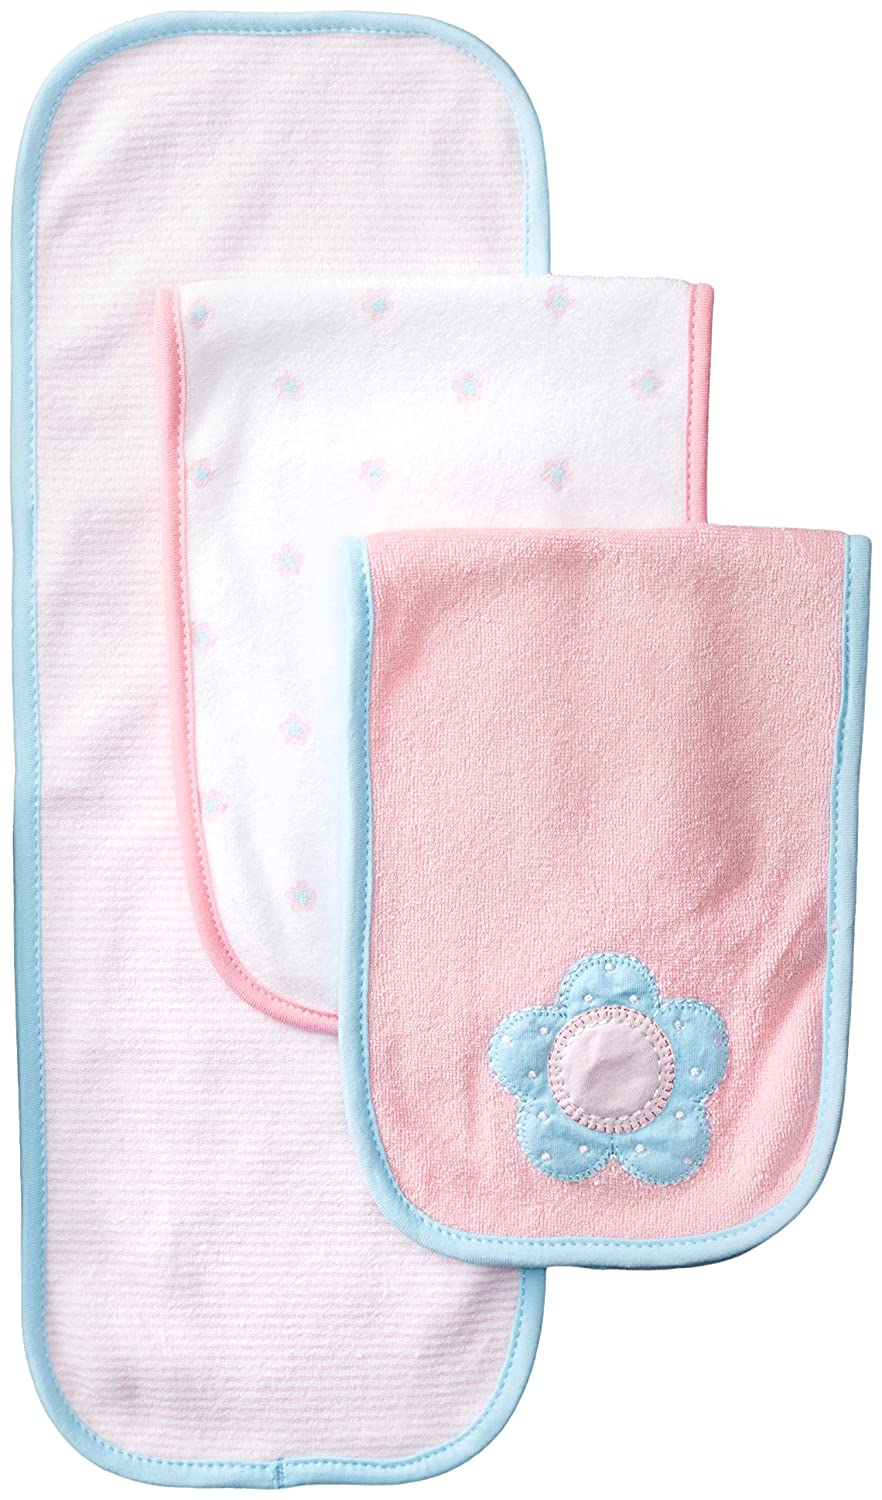 amazoncom gerber baby girlsu0027 3 pack terry burp cloths love one size clothing